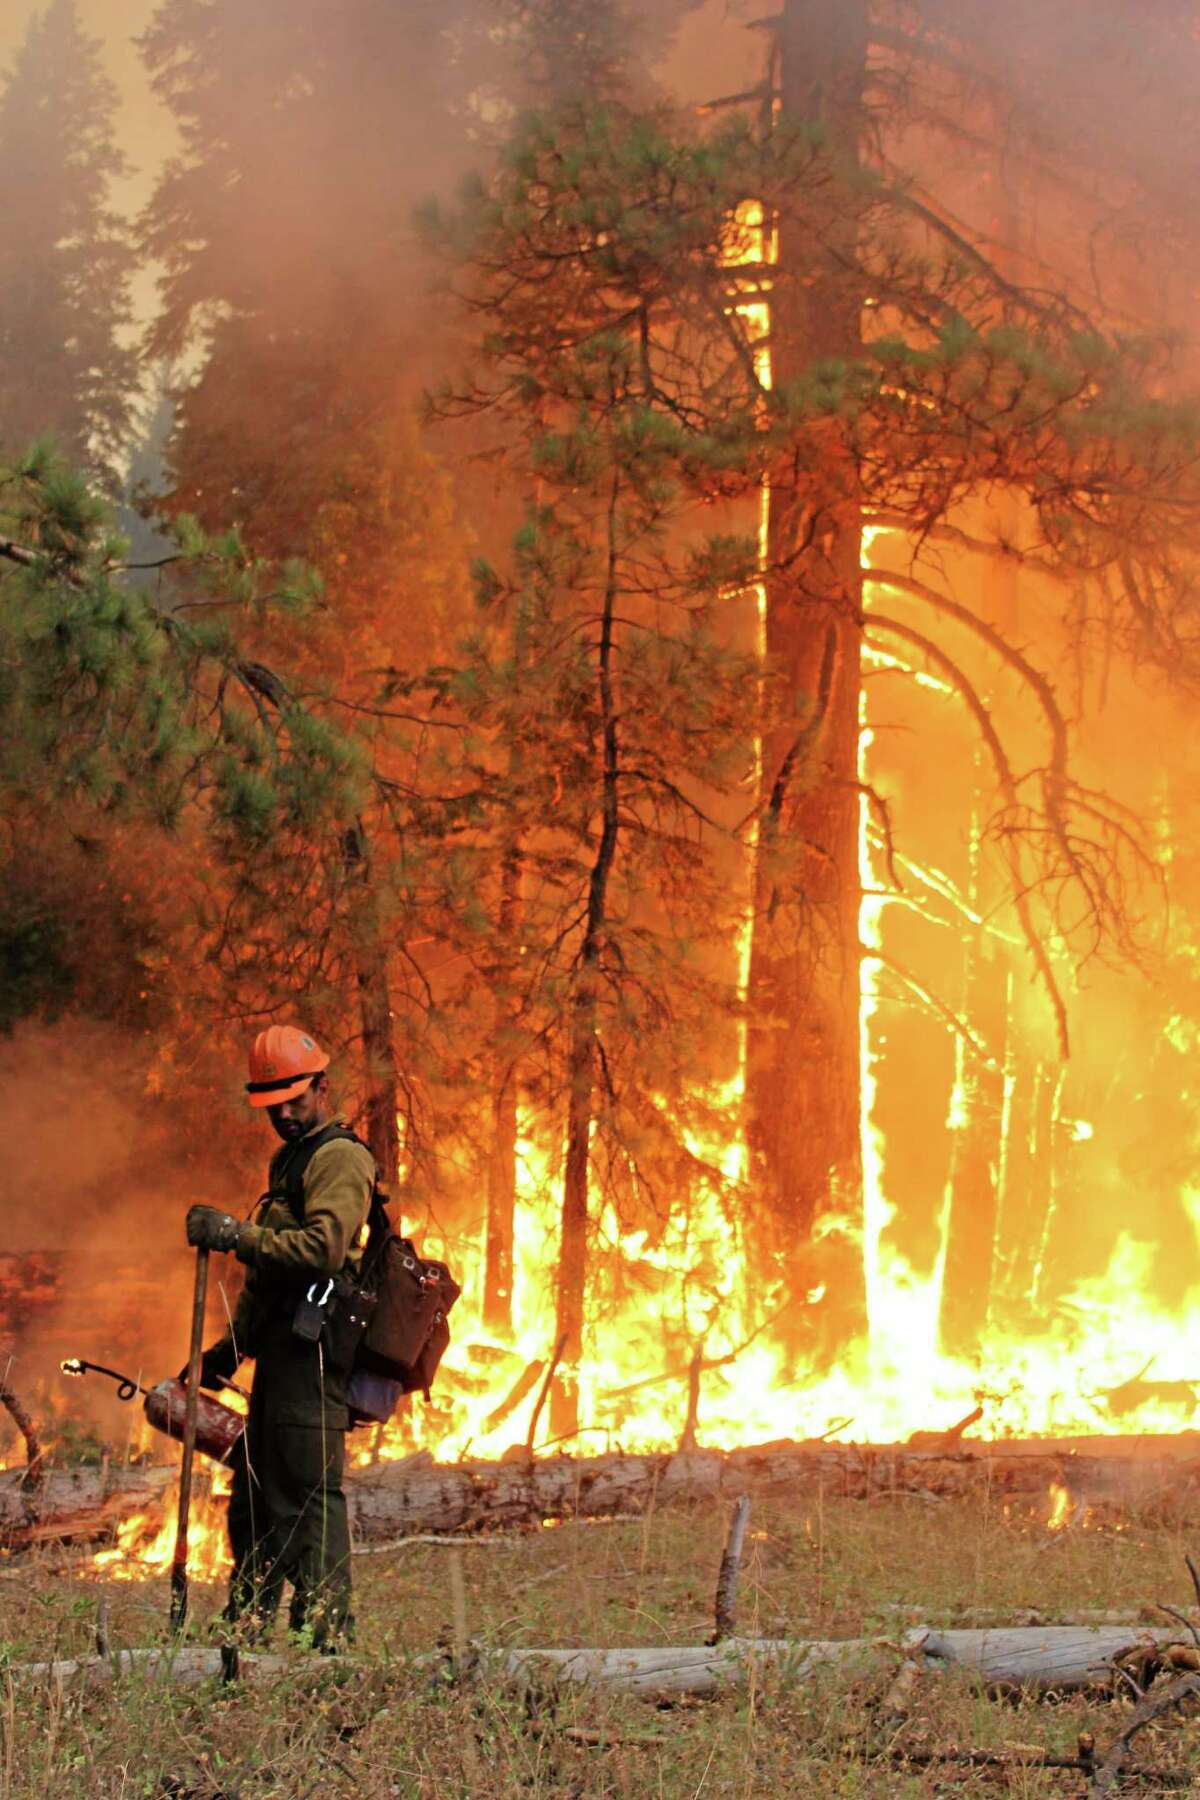 In this photo provided by the U.S. Forest Service, fire crew members stand watch near a controlled burn operation as they fight the Rim Fire near Yosemite National Park in California Monday, Sept. 2, 2013. The massive wildfire is now 75 percent contained according to a state fire spokesman. (AP Photo/U.S. Forest Service, Mike McMillan)